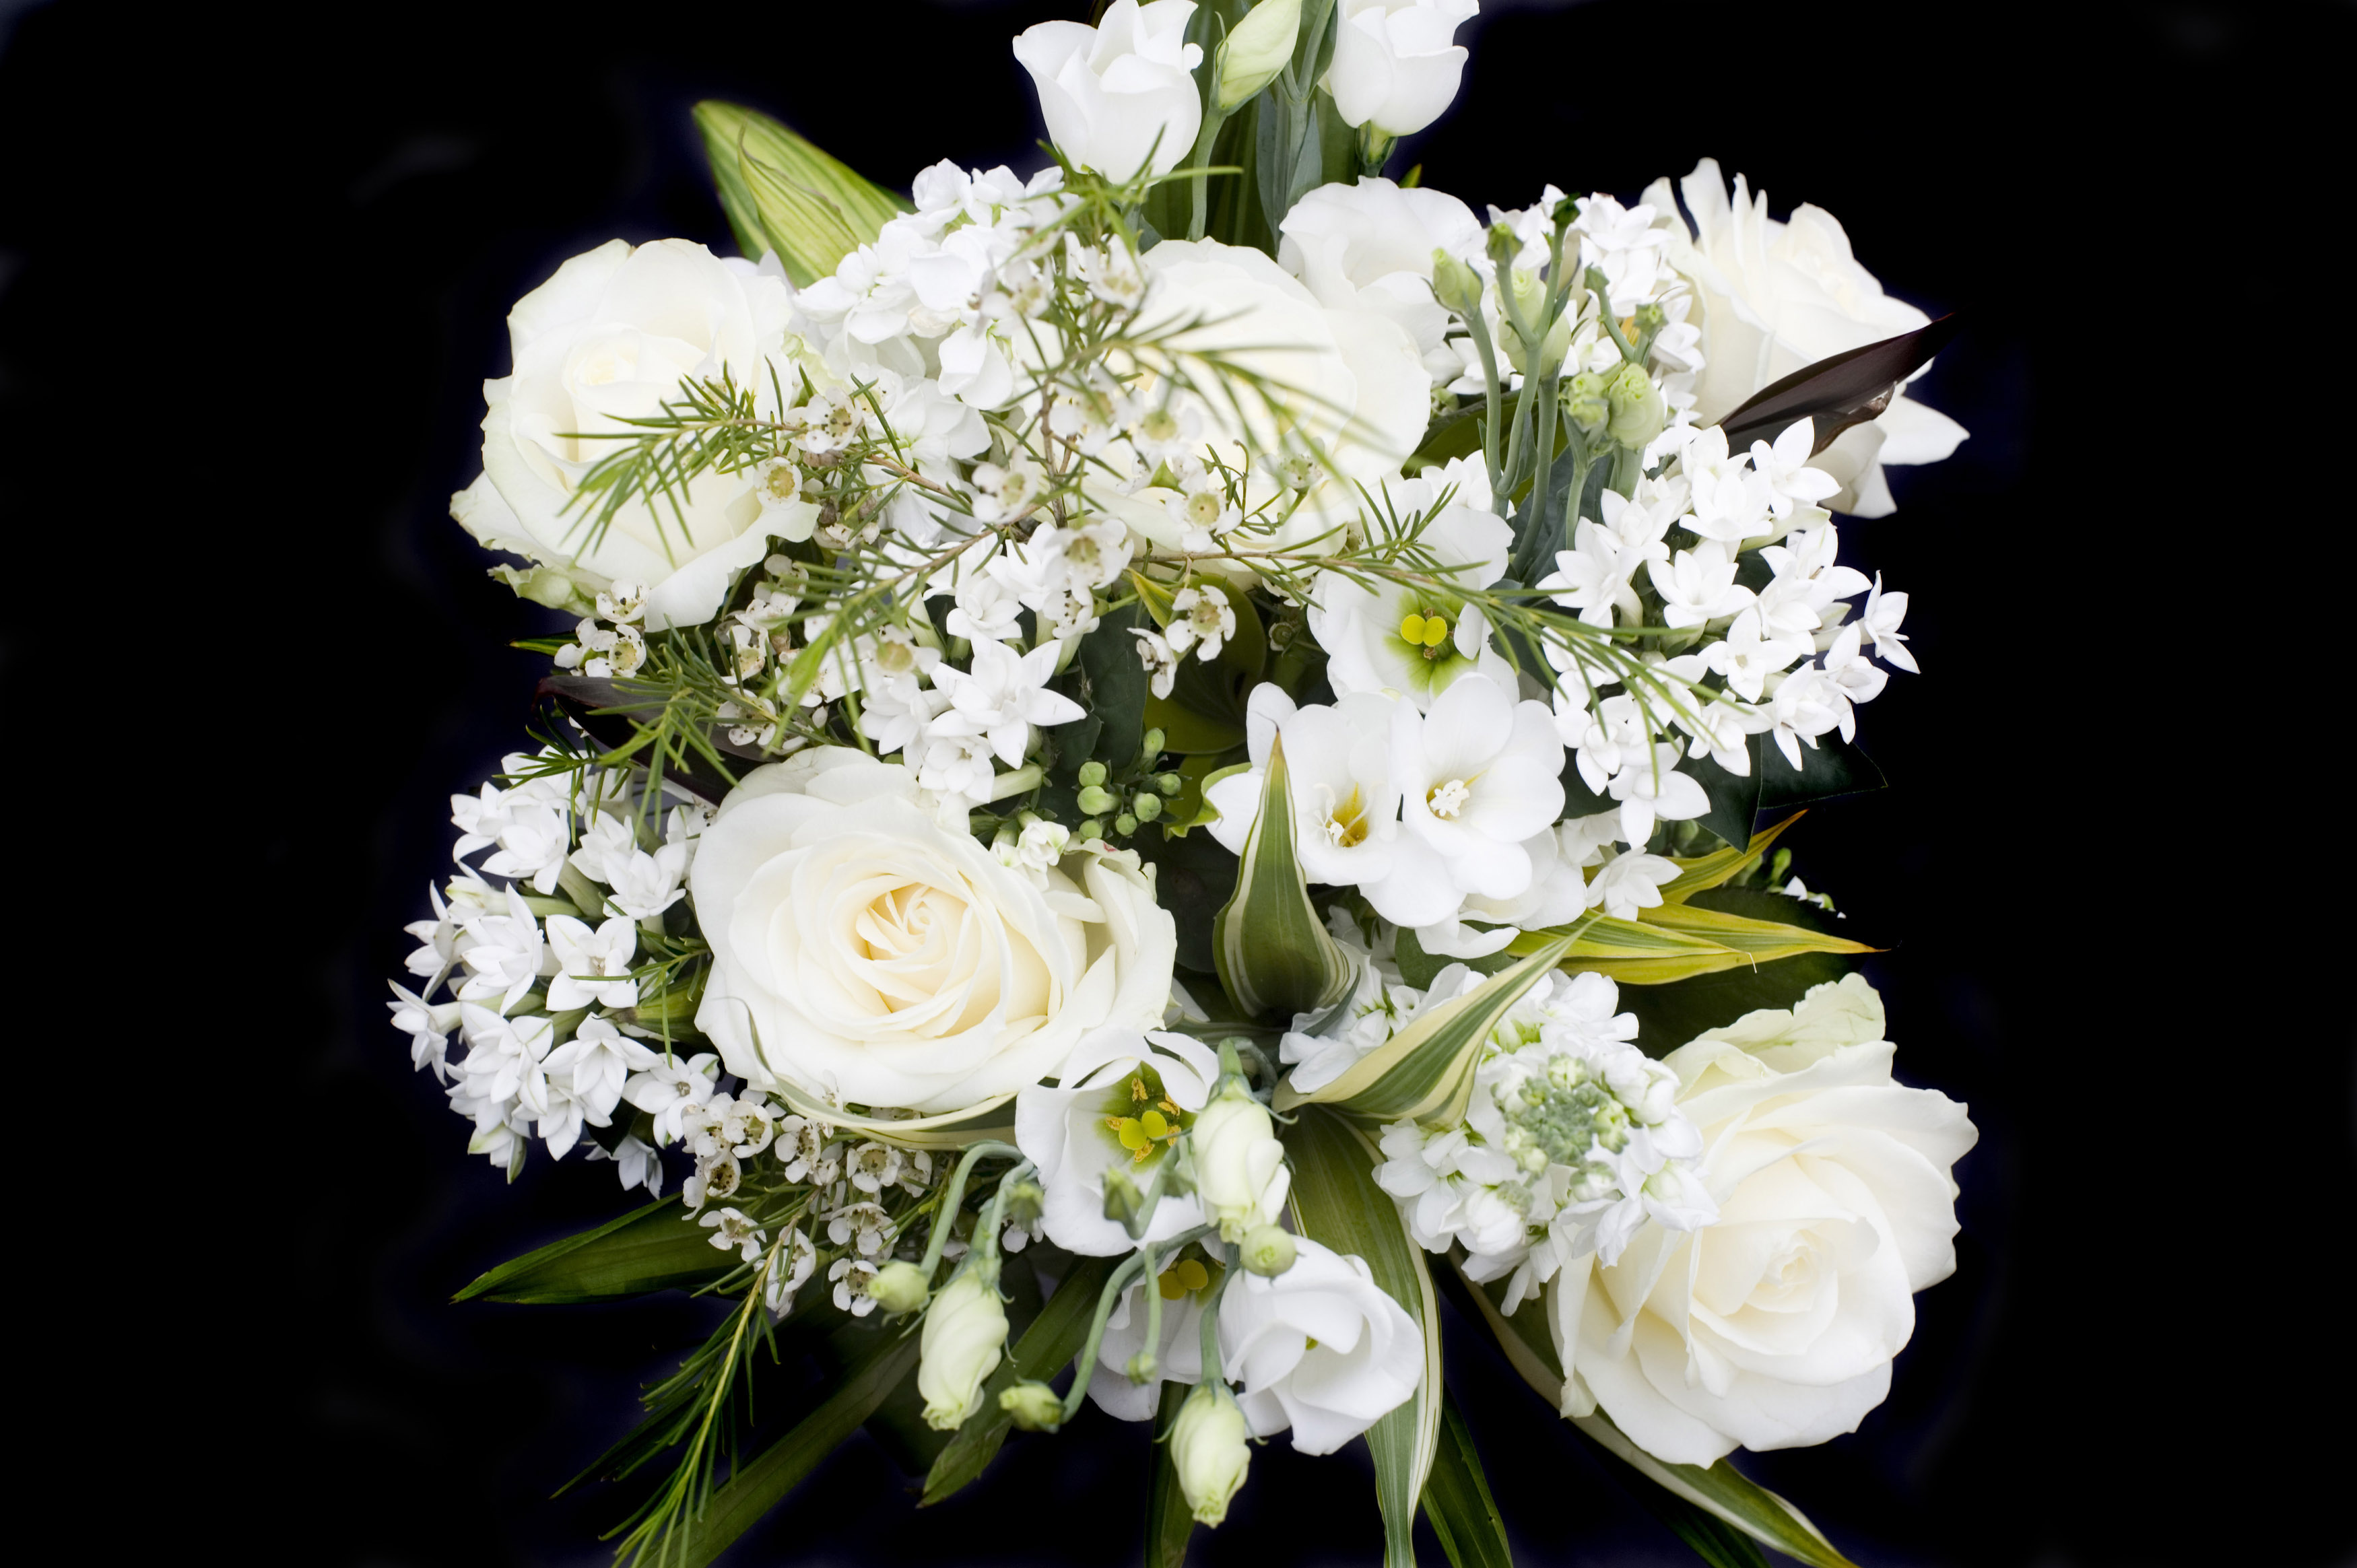 Overhead view of white bouquet on black background 9101 stockarch accept license and download image mightylinksfo